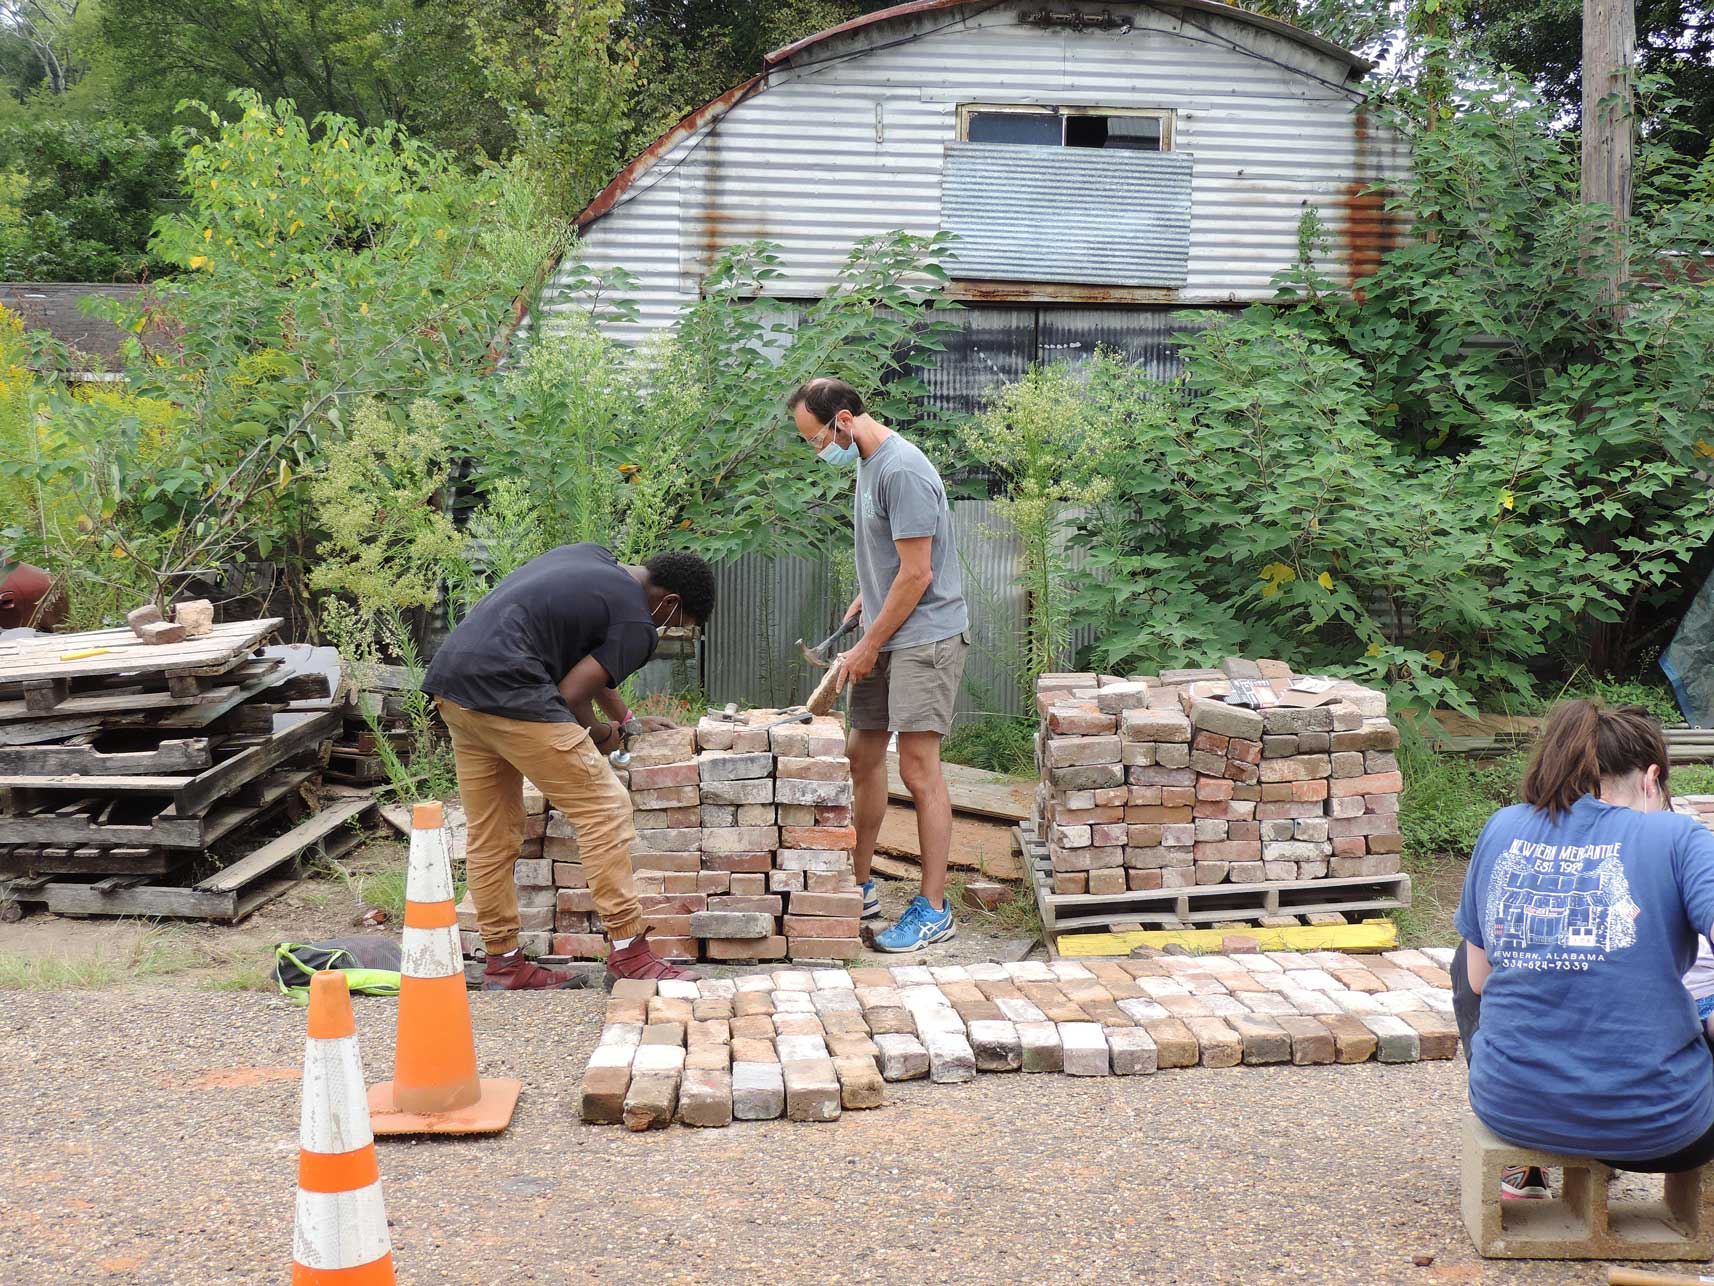 Dr.Dprsey and PHF fellows cleanign bricks